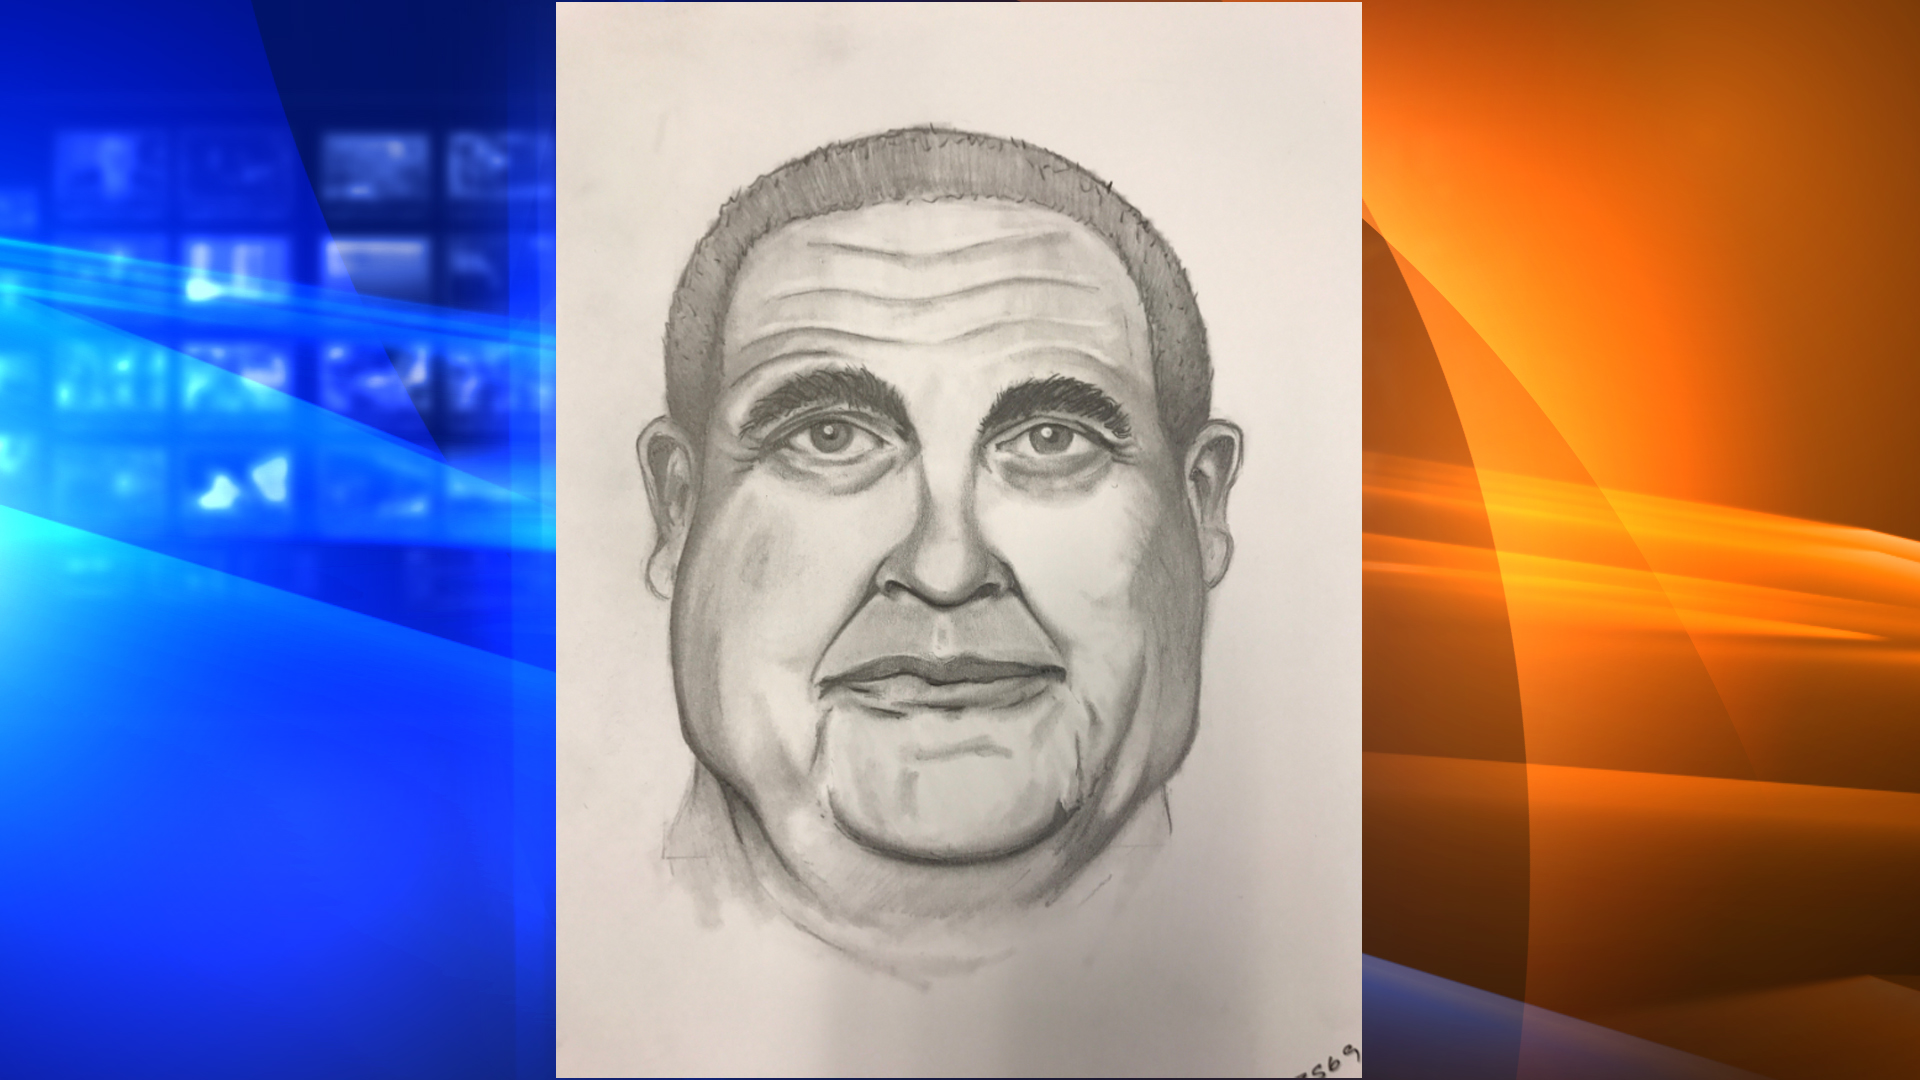 Sketch of attempted kidnapper released on Dec. 3, 2019. (Credit: Orange County Sheriff's Department)